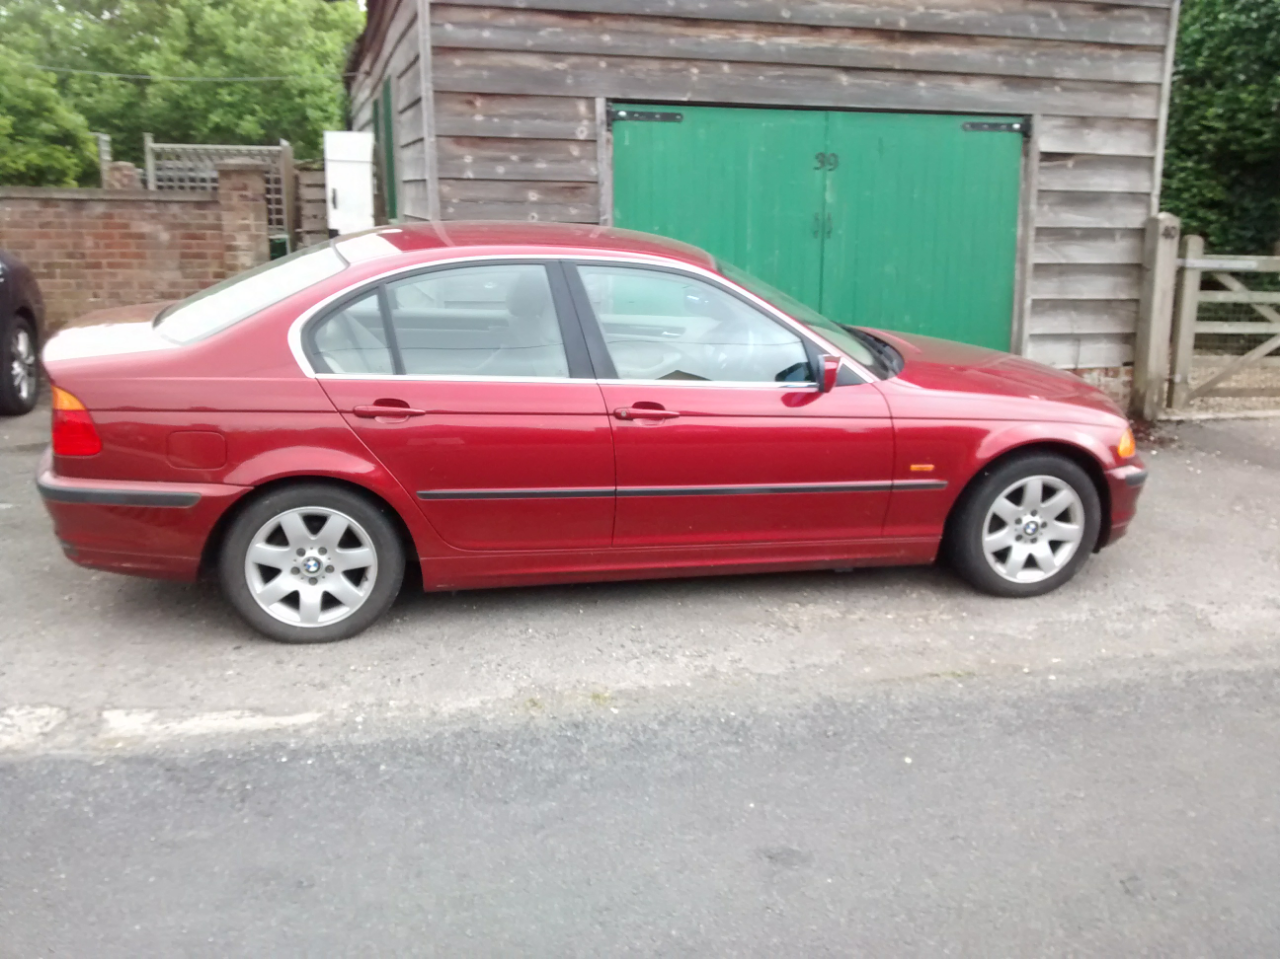 1999 BMW 323i Low mileage Excellent condition For Sale (picture 1 of 6)